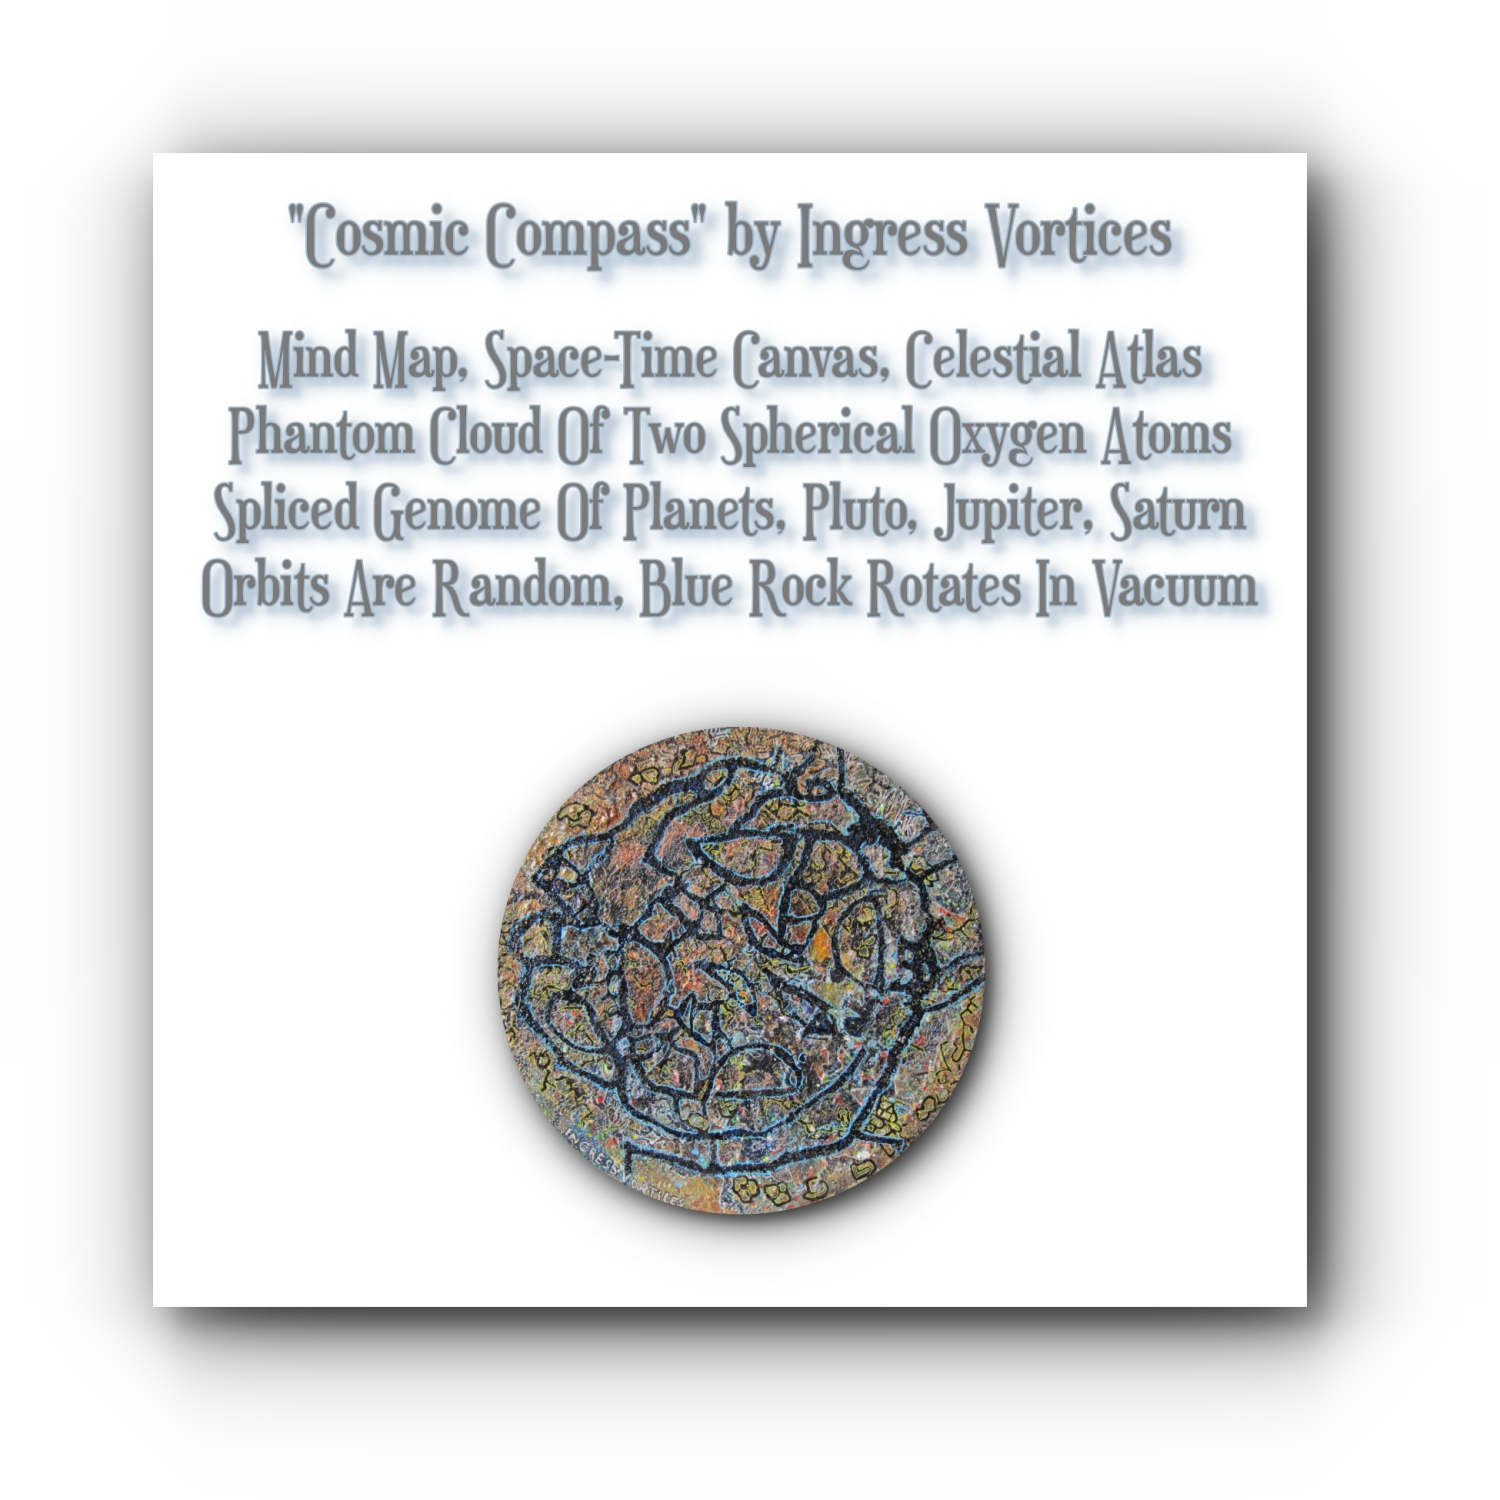 painting-collage-poem-cosmic-compass-artists-ingress-vortices.jpg